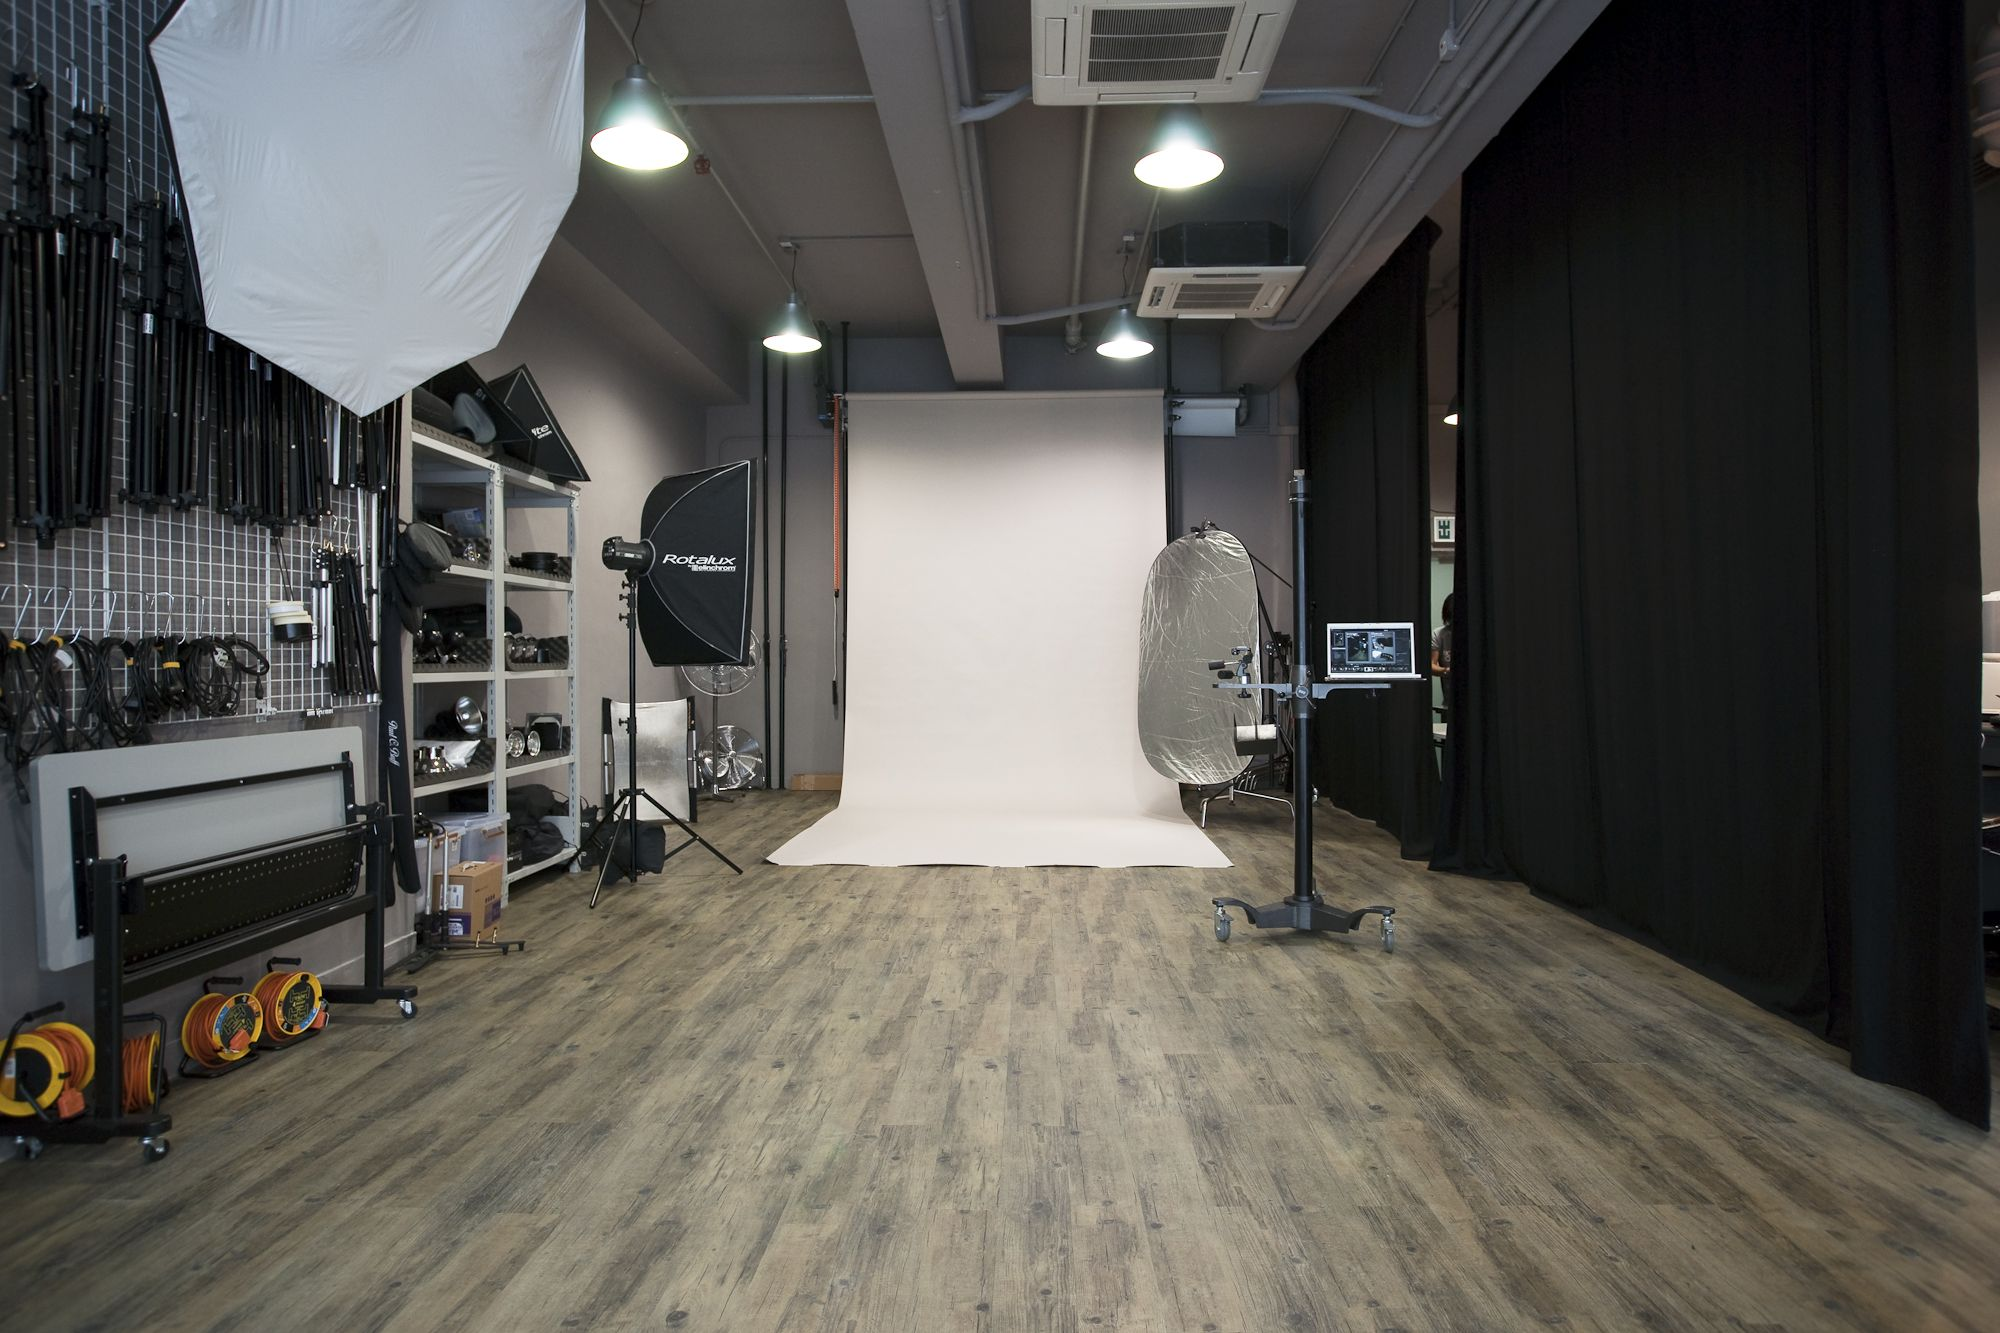 Our New Studio Pasm Workshop Home Studio Photography Photography Studio Design Photo Studio Design